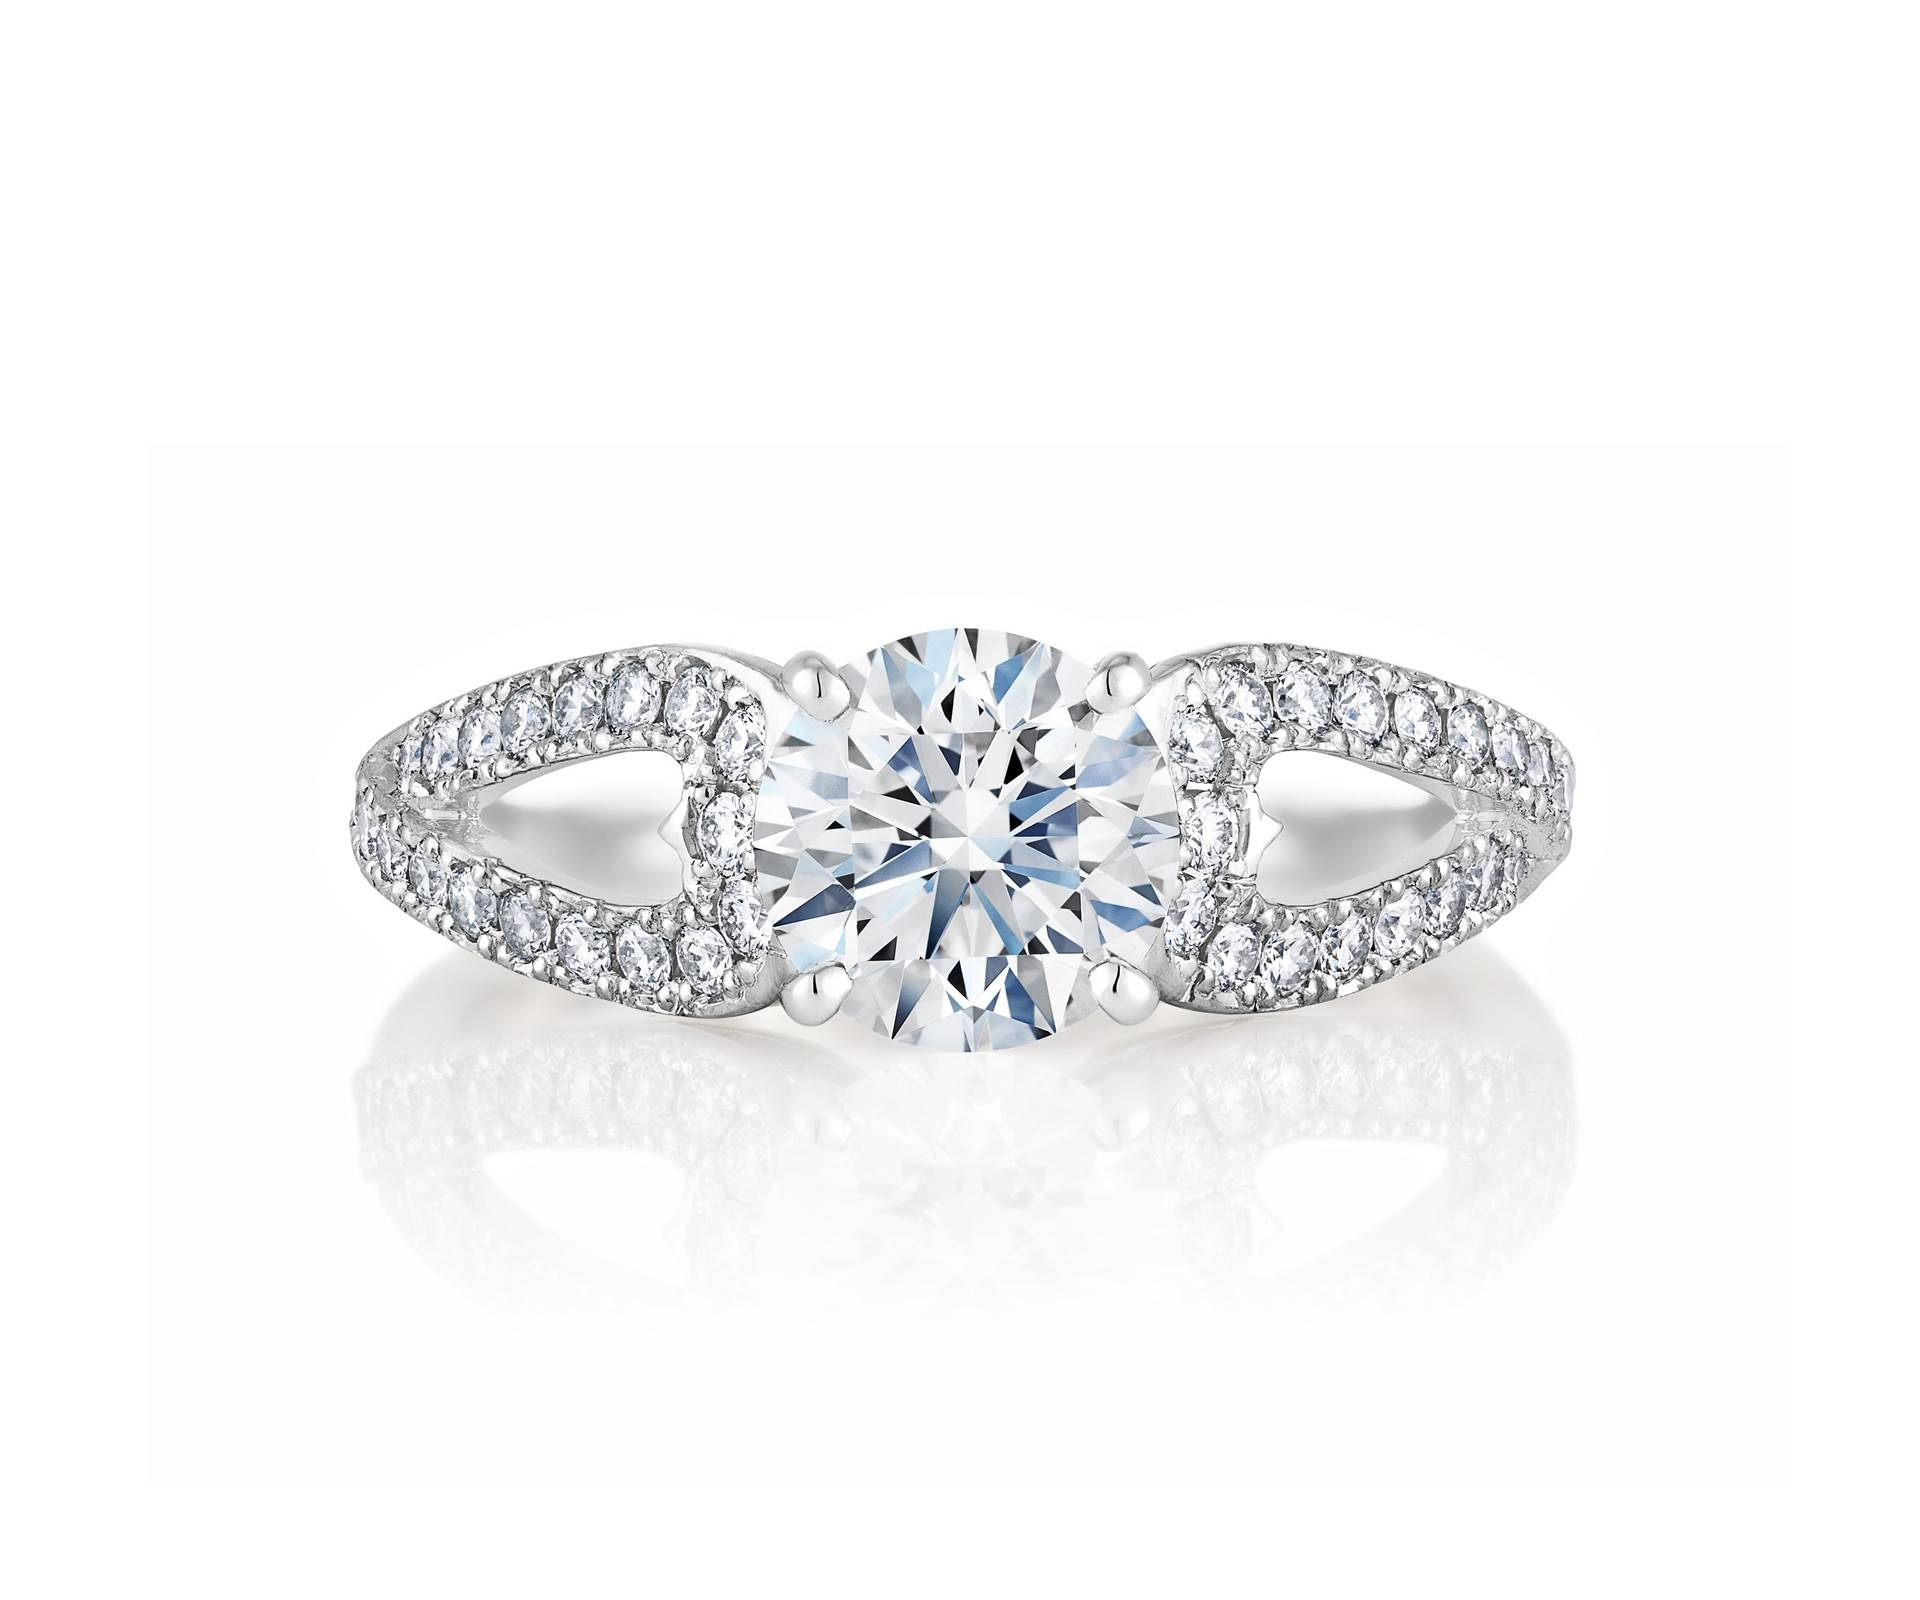 Diamond Engagement Rings & Promise Rings | De Beers With Regard To Spiral Engagement Rings (View 4 of 15)